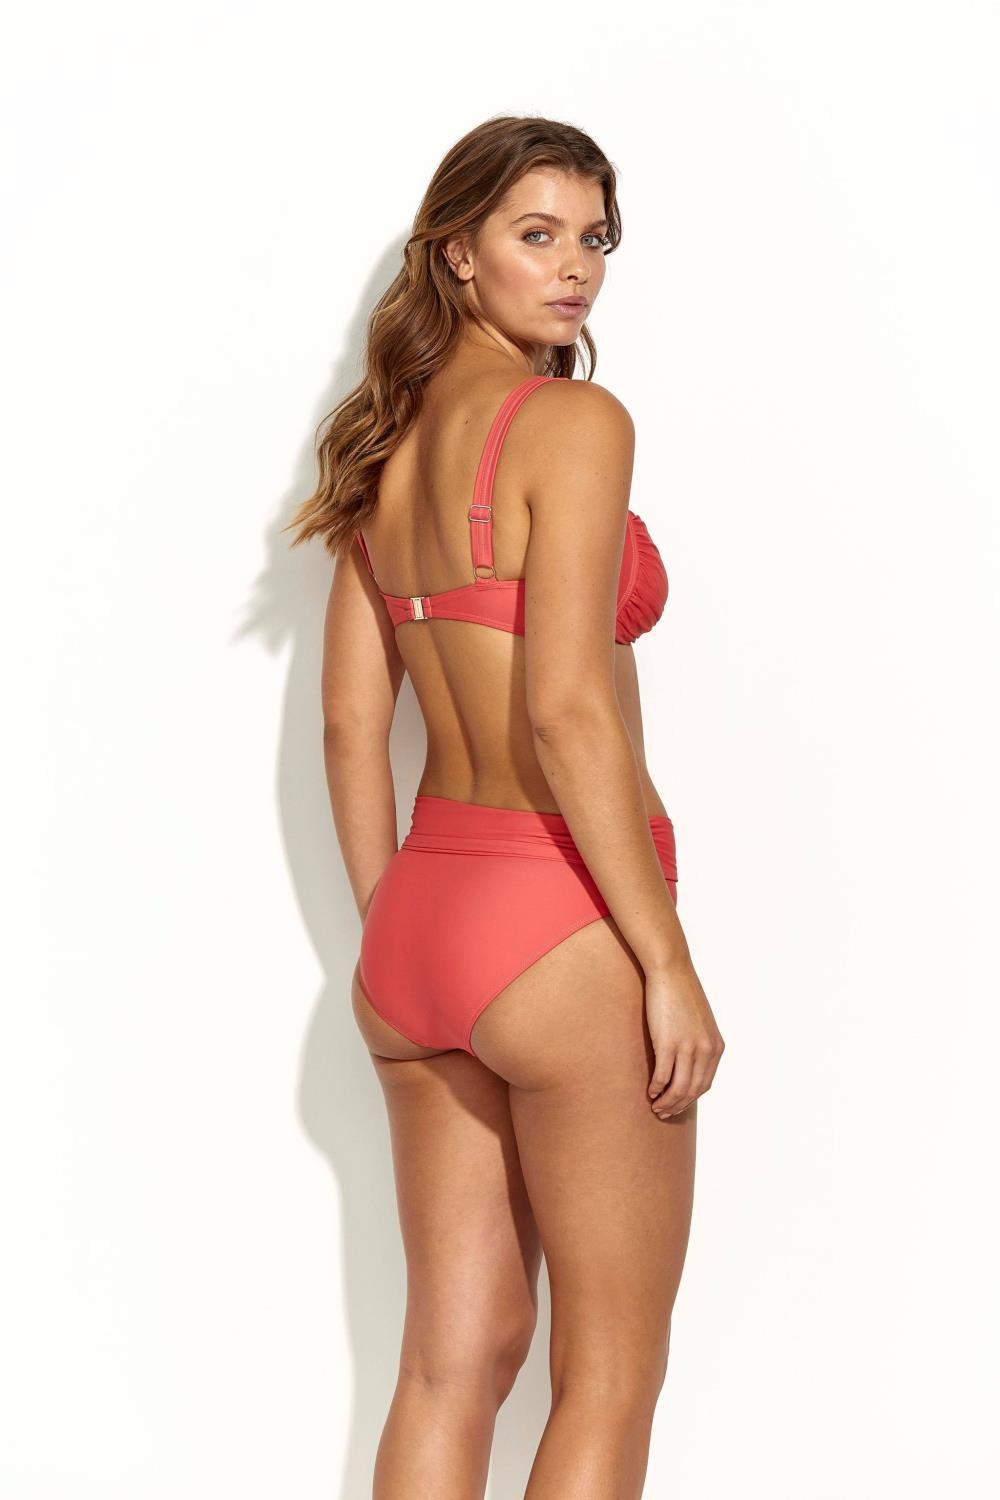 gallery-7196-for-602AA9230